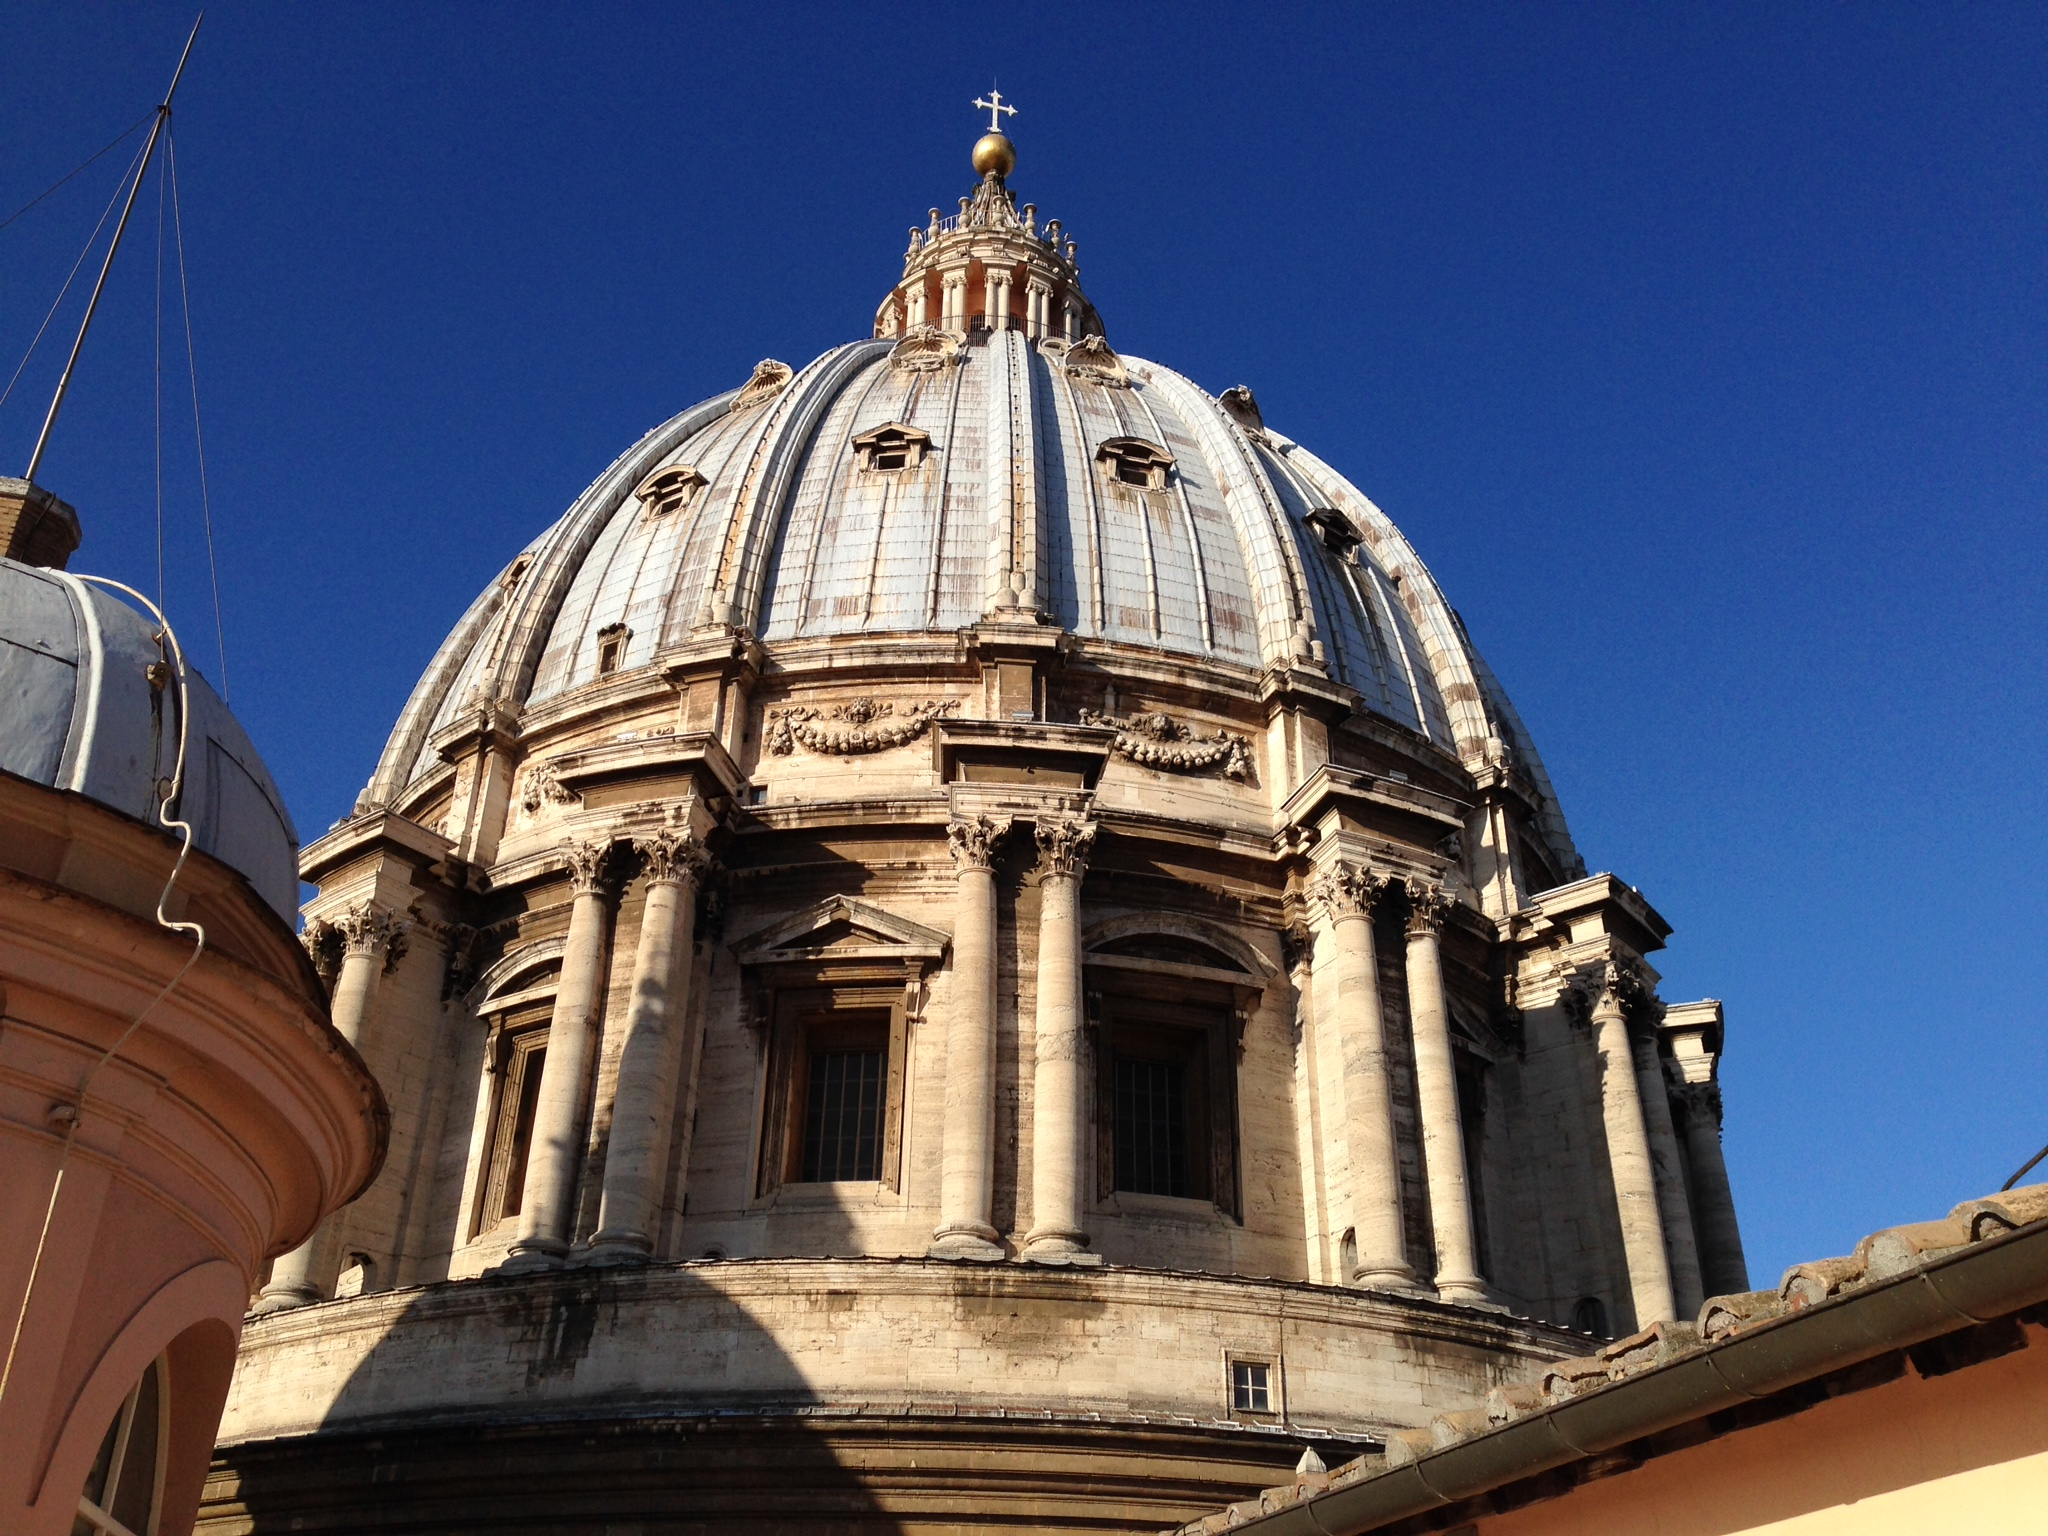 St. Peter's Basilica Dome, taken from the roof (near the gift shop)